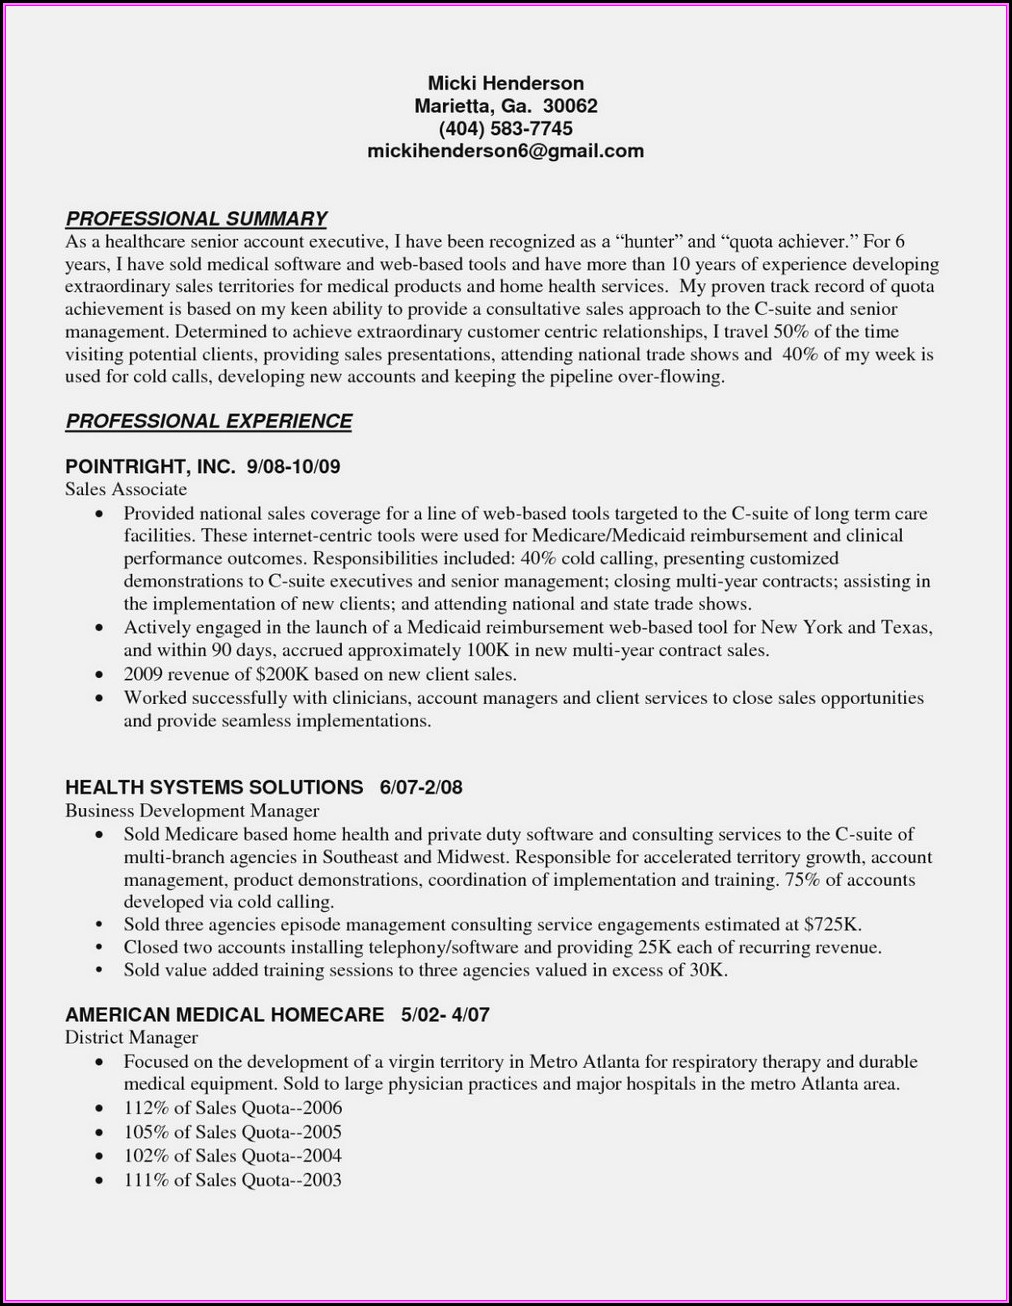 executive resume writing services best in atlanta ga professional service building Resume Professional Resume Writing Service Atlanta